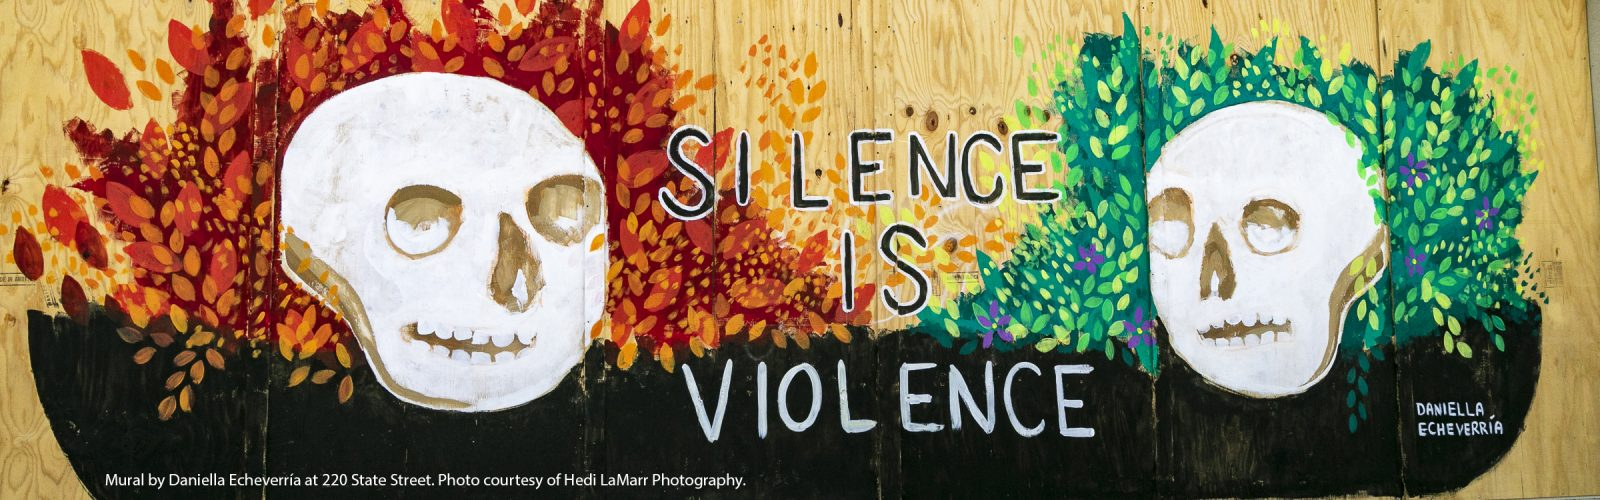 "Mural with two skulls at left and right, in front of a vibrant red/orange and green leaf motif, with the words ""Silence is Violence"" in between the two skulls."